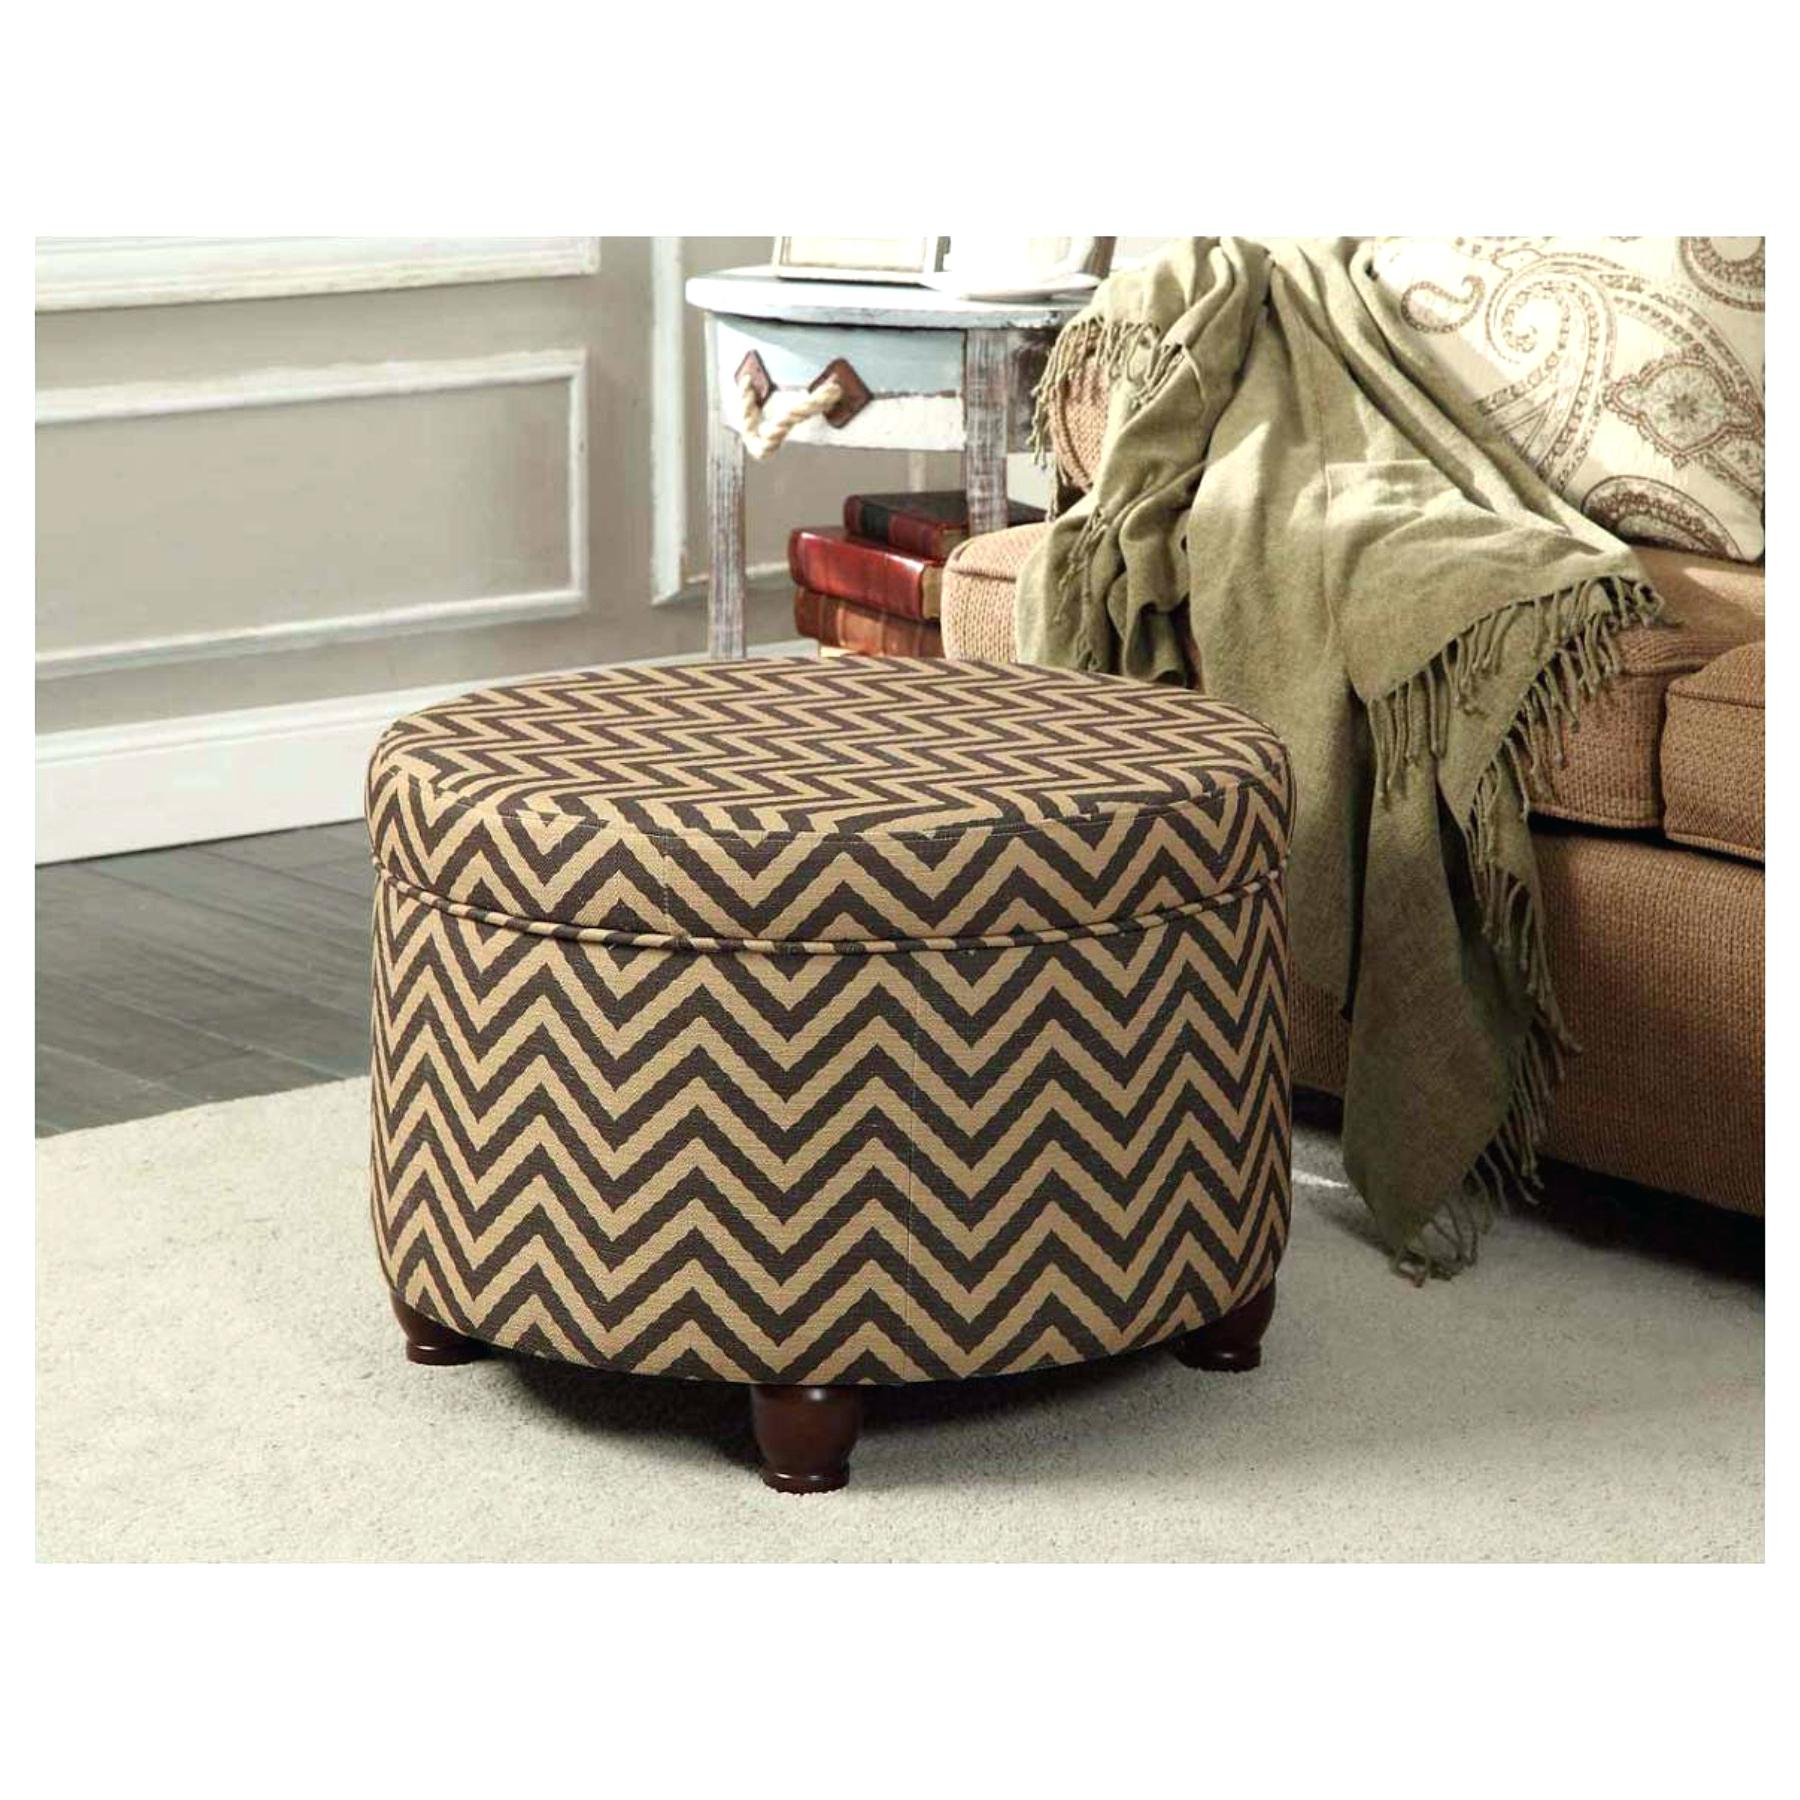 Extra Large Ottoman for Large Space Living Room Design: Large Rectangular Ottoman | Large Round Coffee Table Ottoman | Extra Large Ottoman